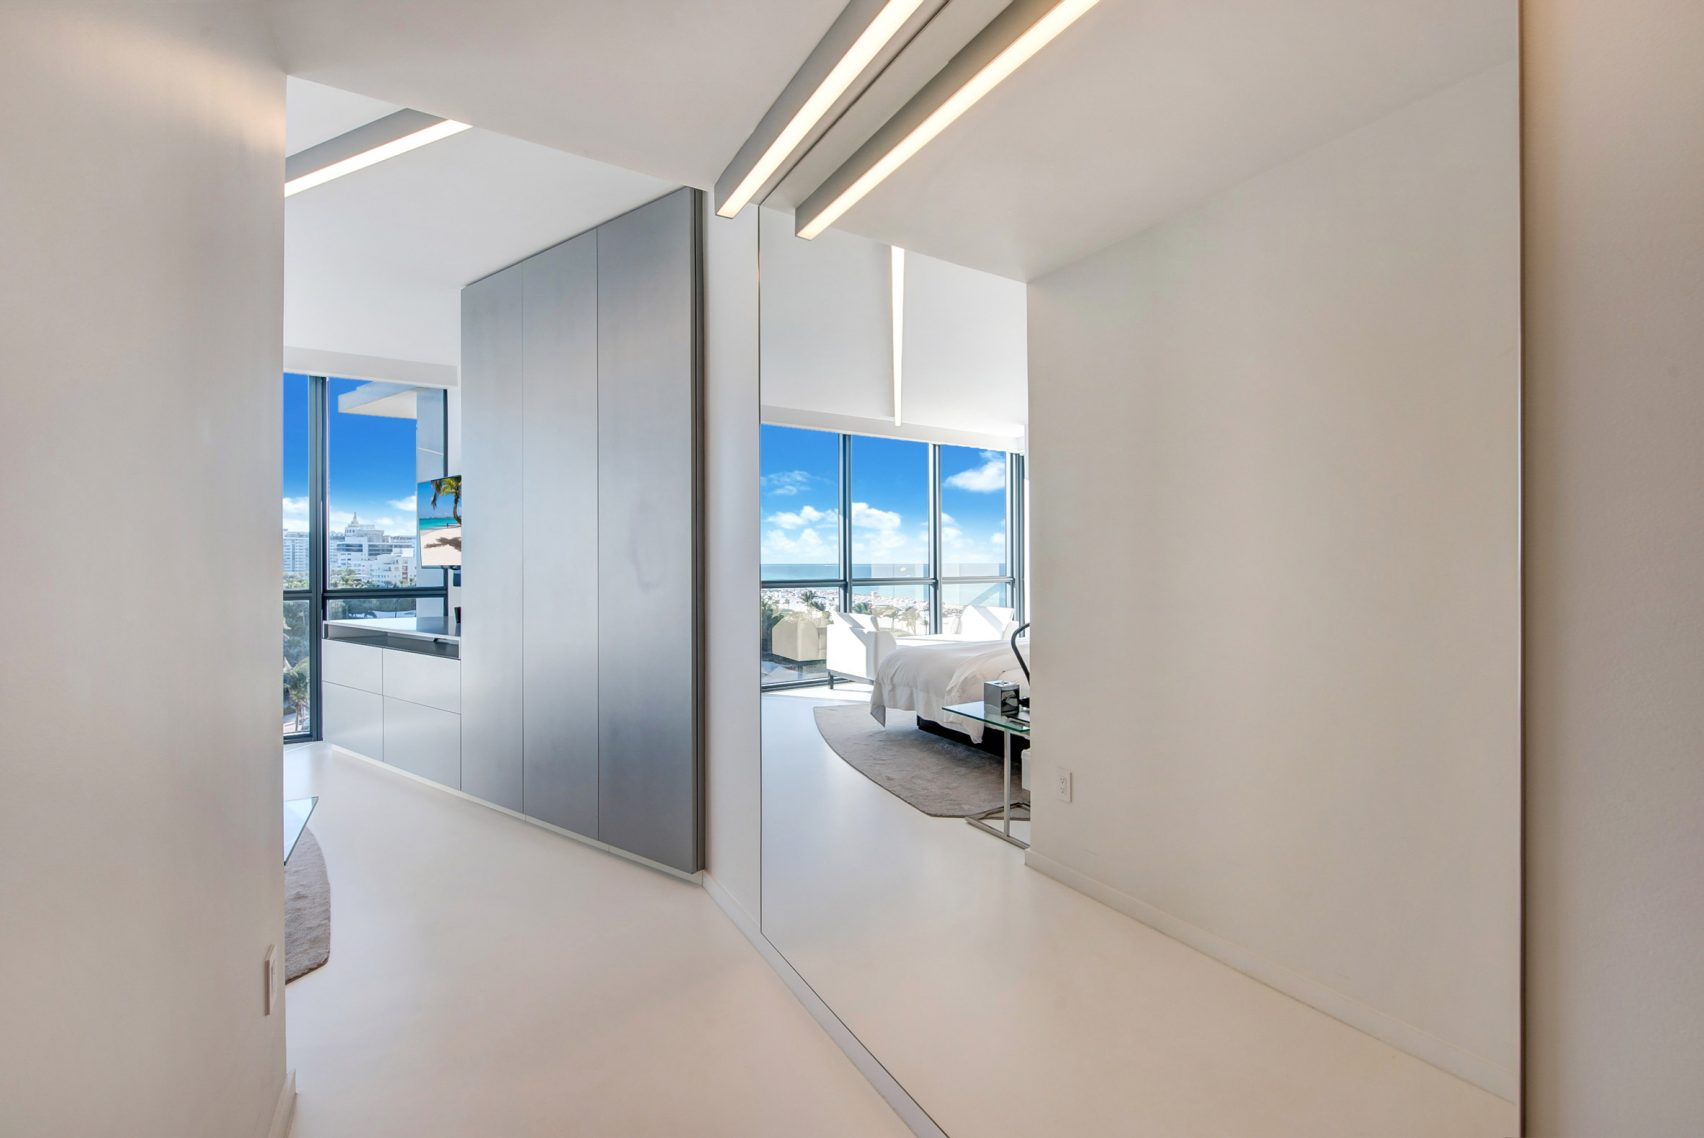 design, luxury, penthouse, american, miami, modern, zaha hadi, beach, architect, villa, billionaire, house, usa, corridor